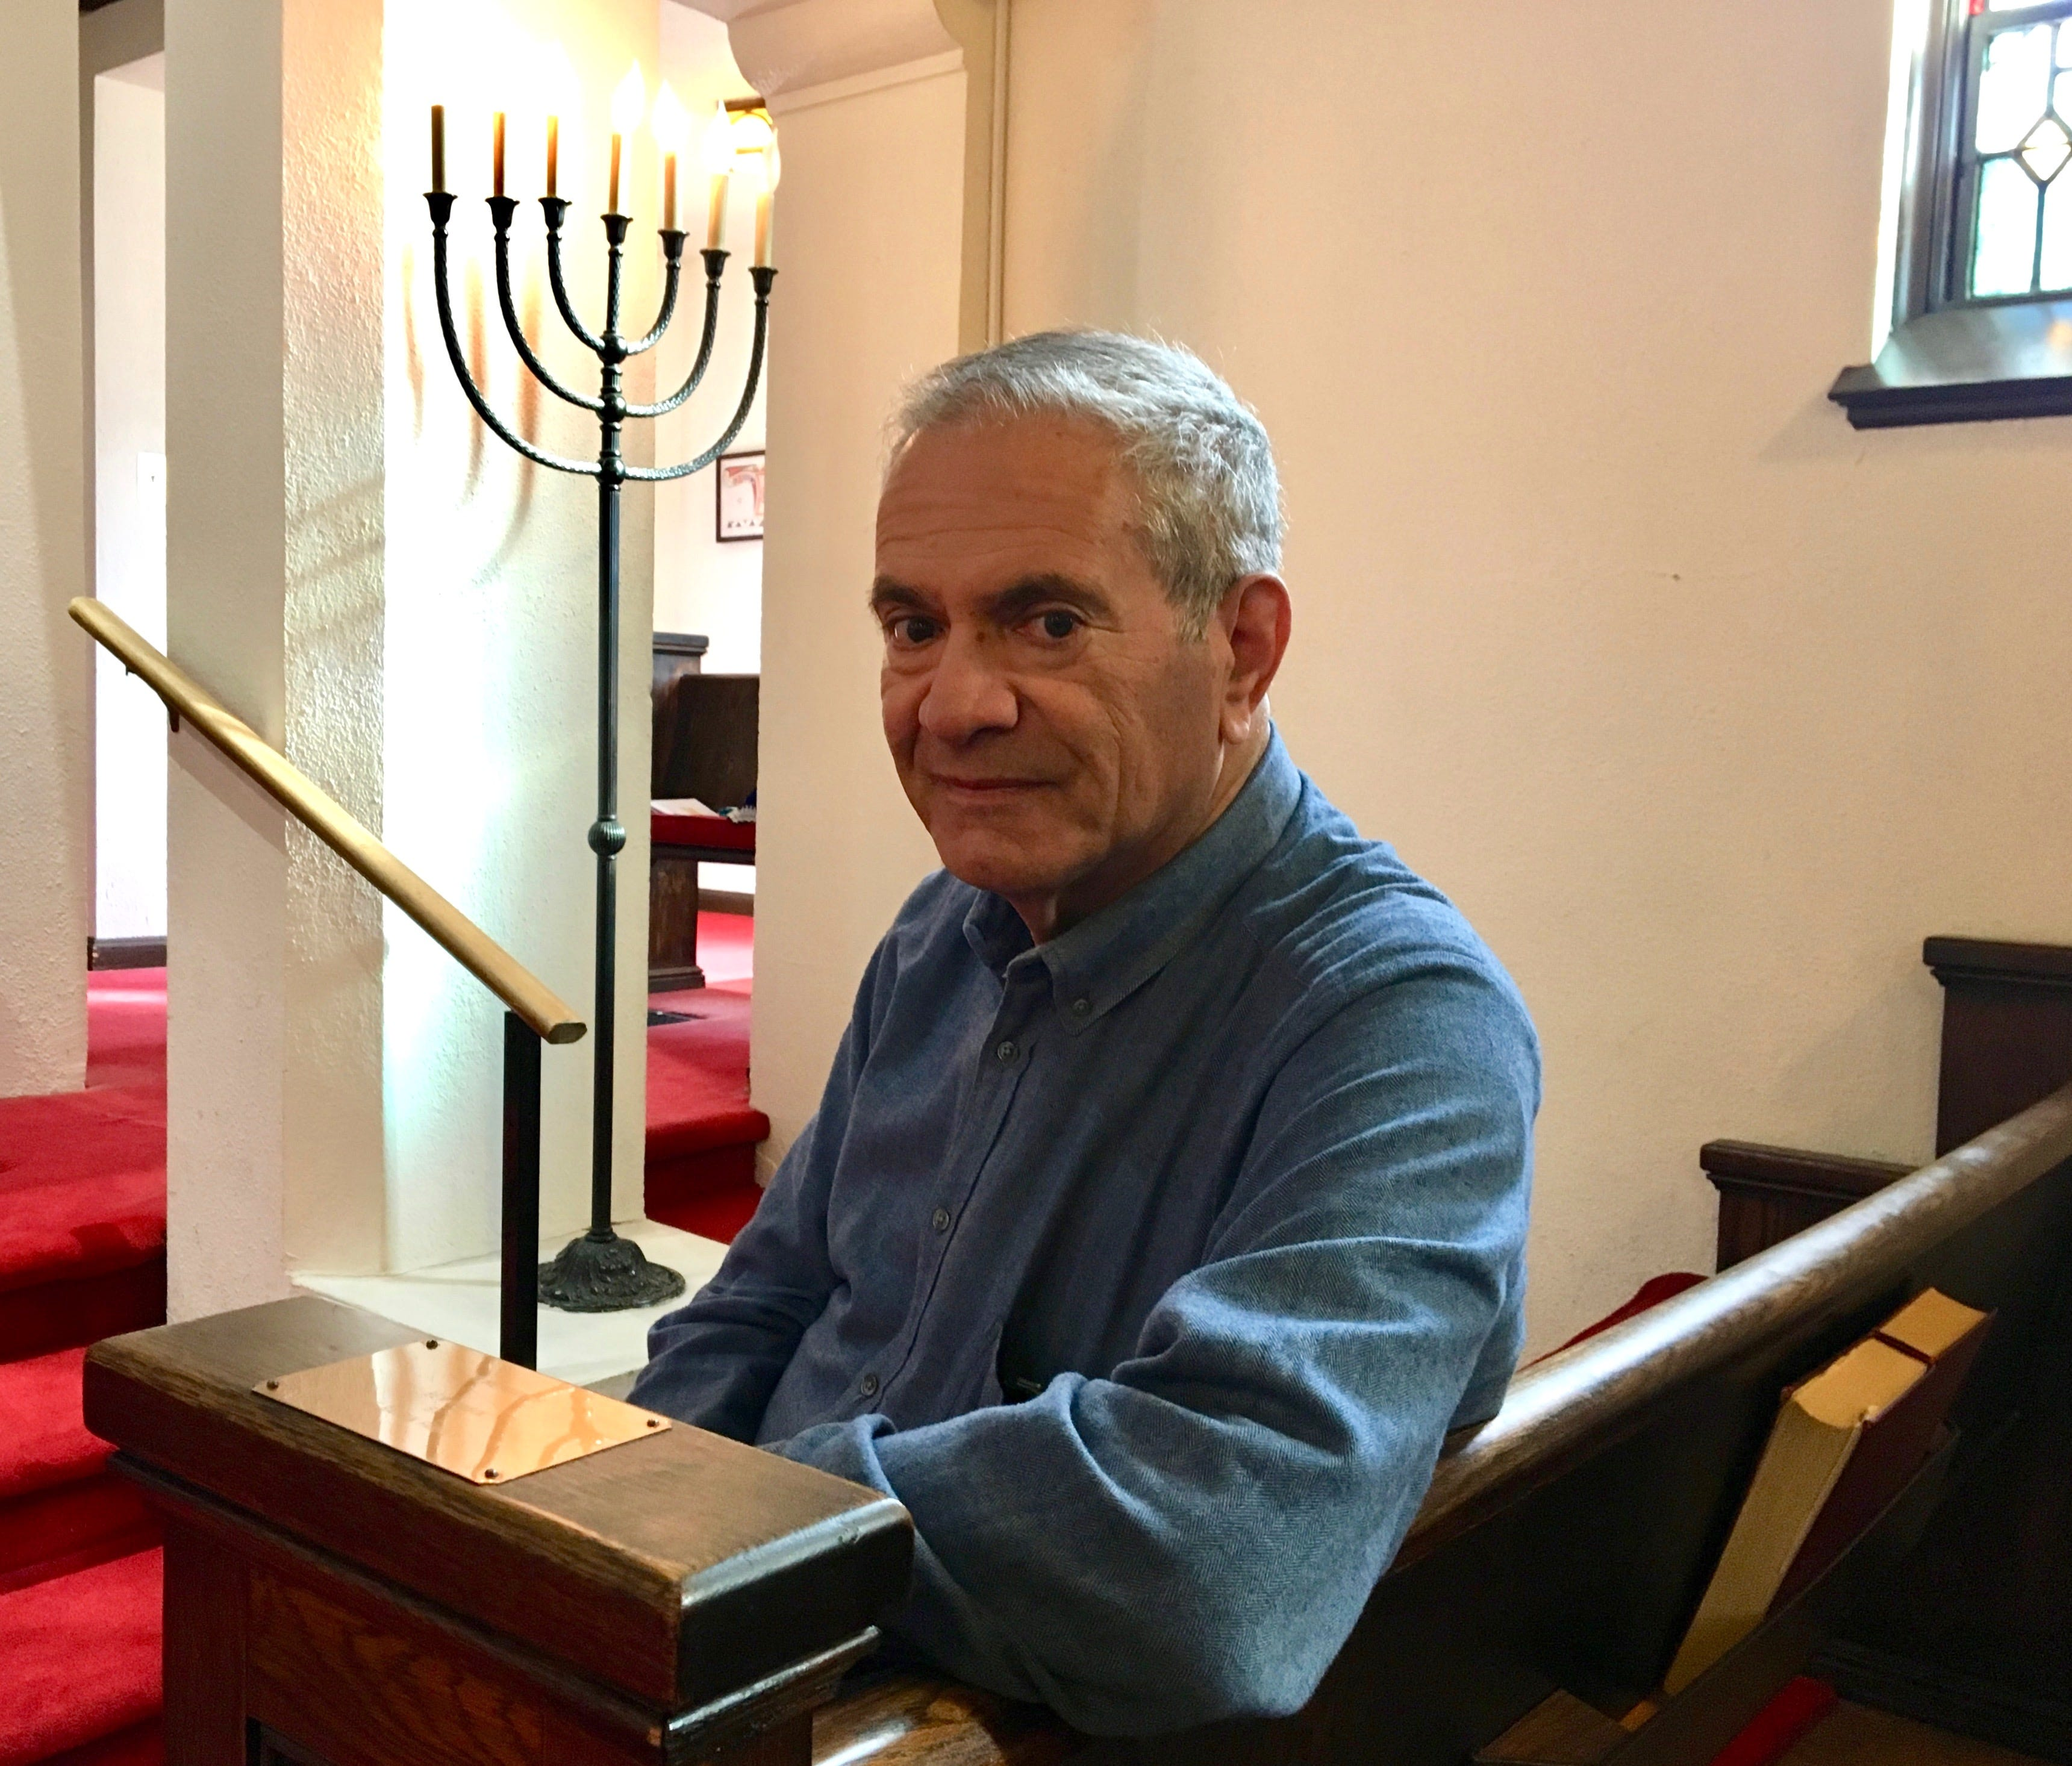 Rabbi Peter Grumbacher sits inside the sanctuary at Temple House of Israel in Staunton on Sunday, October 28, 2018, the day after the deadliest attack against the Jewish community in the history of the United States.